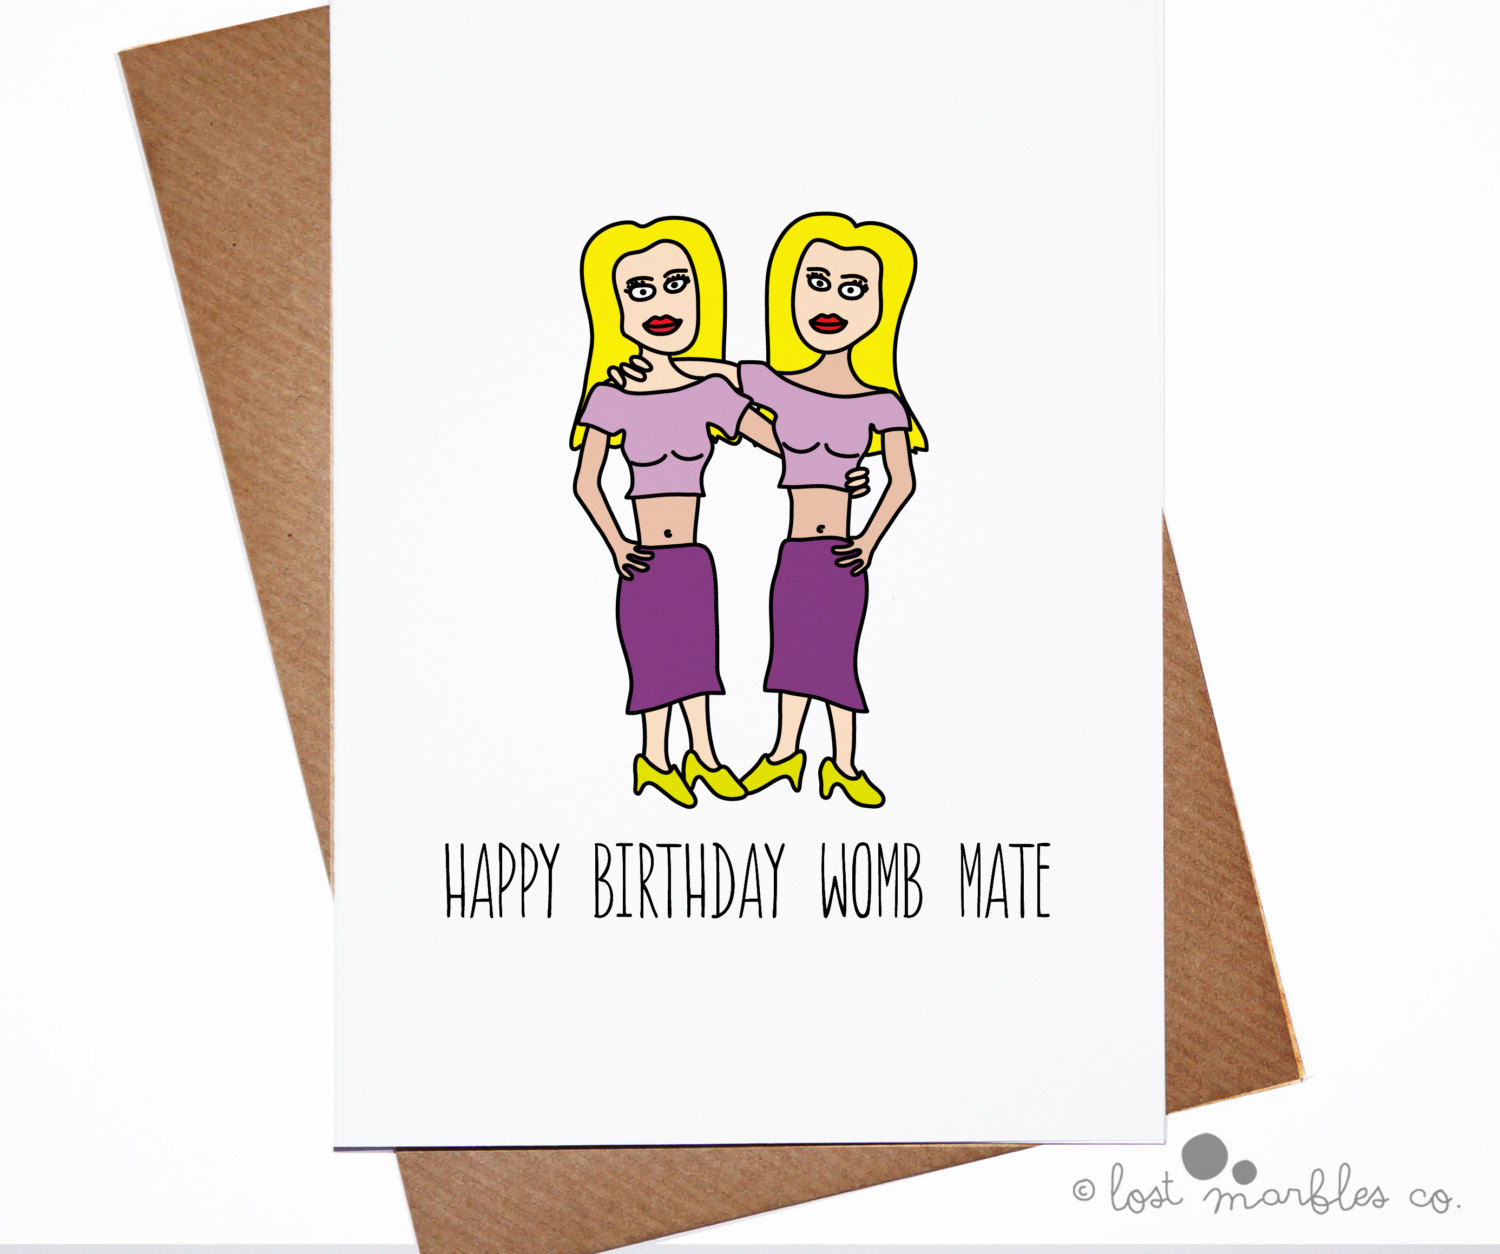 cool drawings for birthday cards ; cute-birthday-cards-twins-girl-yellow-hair-purple-clothings-womb-mate-white-background-simple-photos-draw-greetings-clipart-drawing